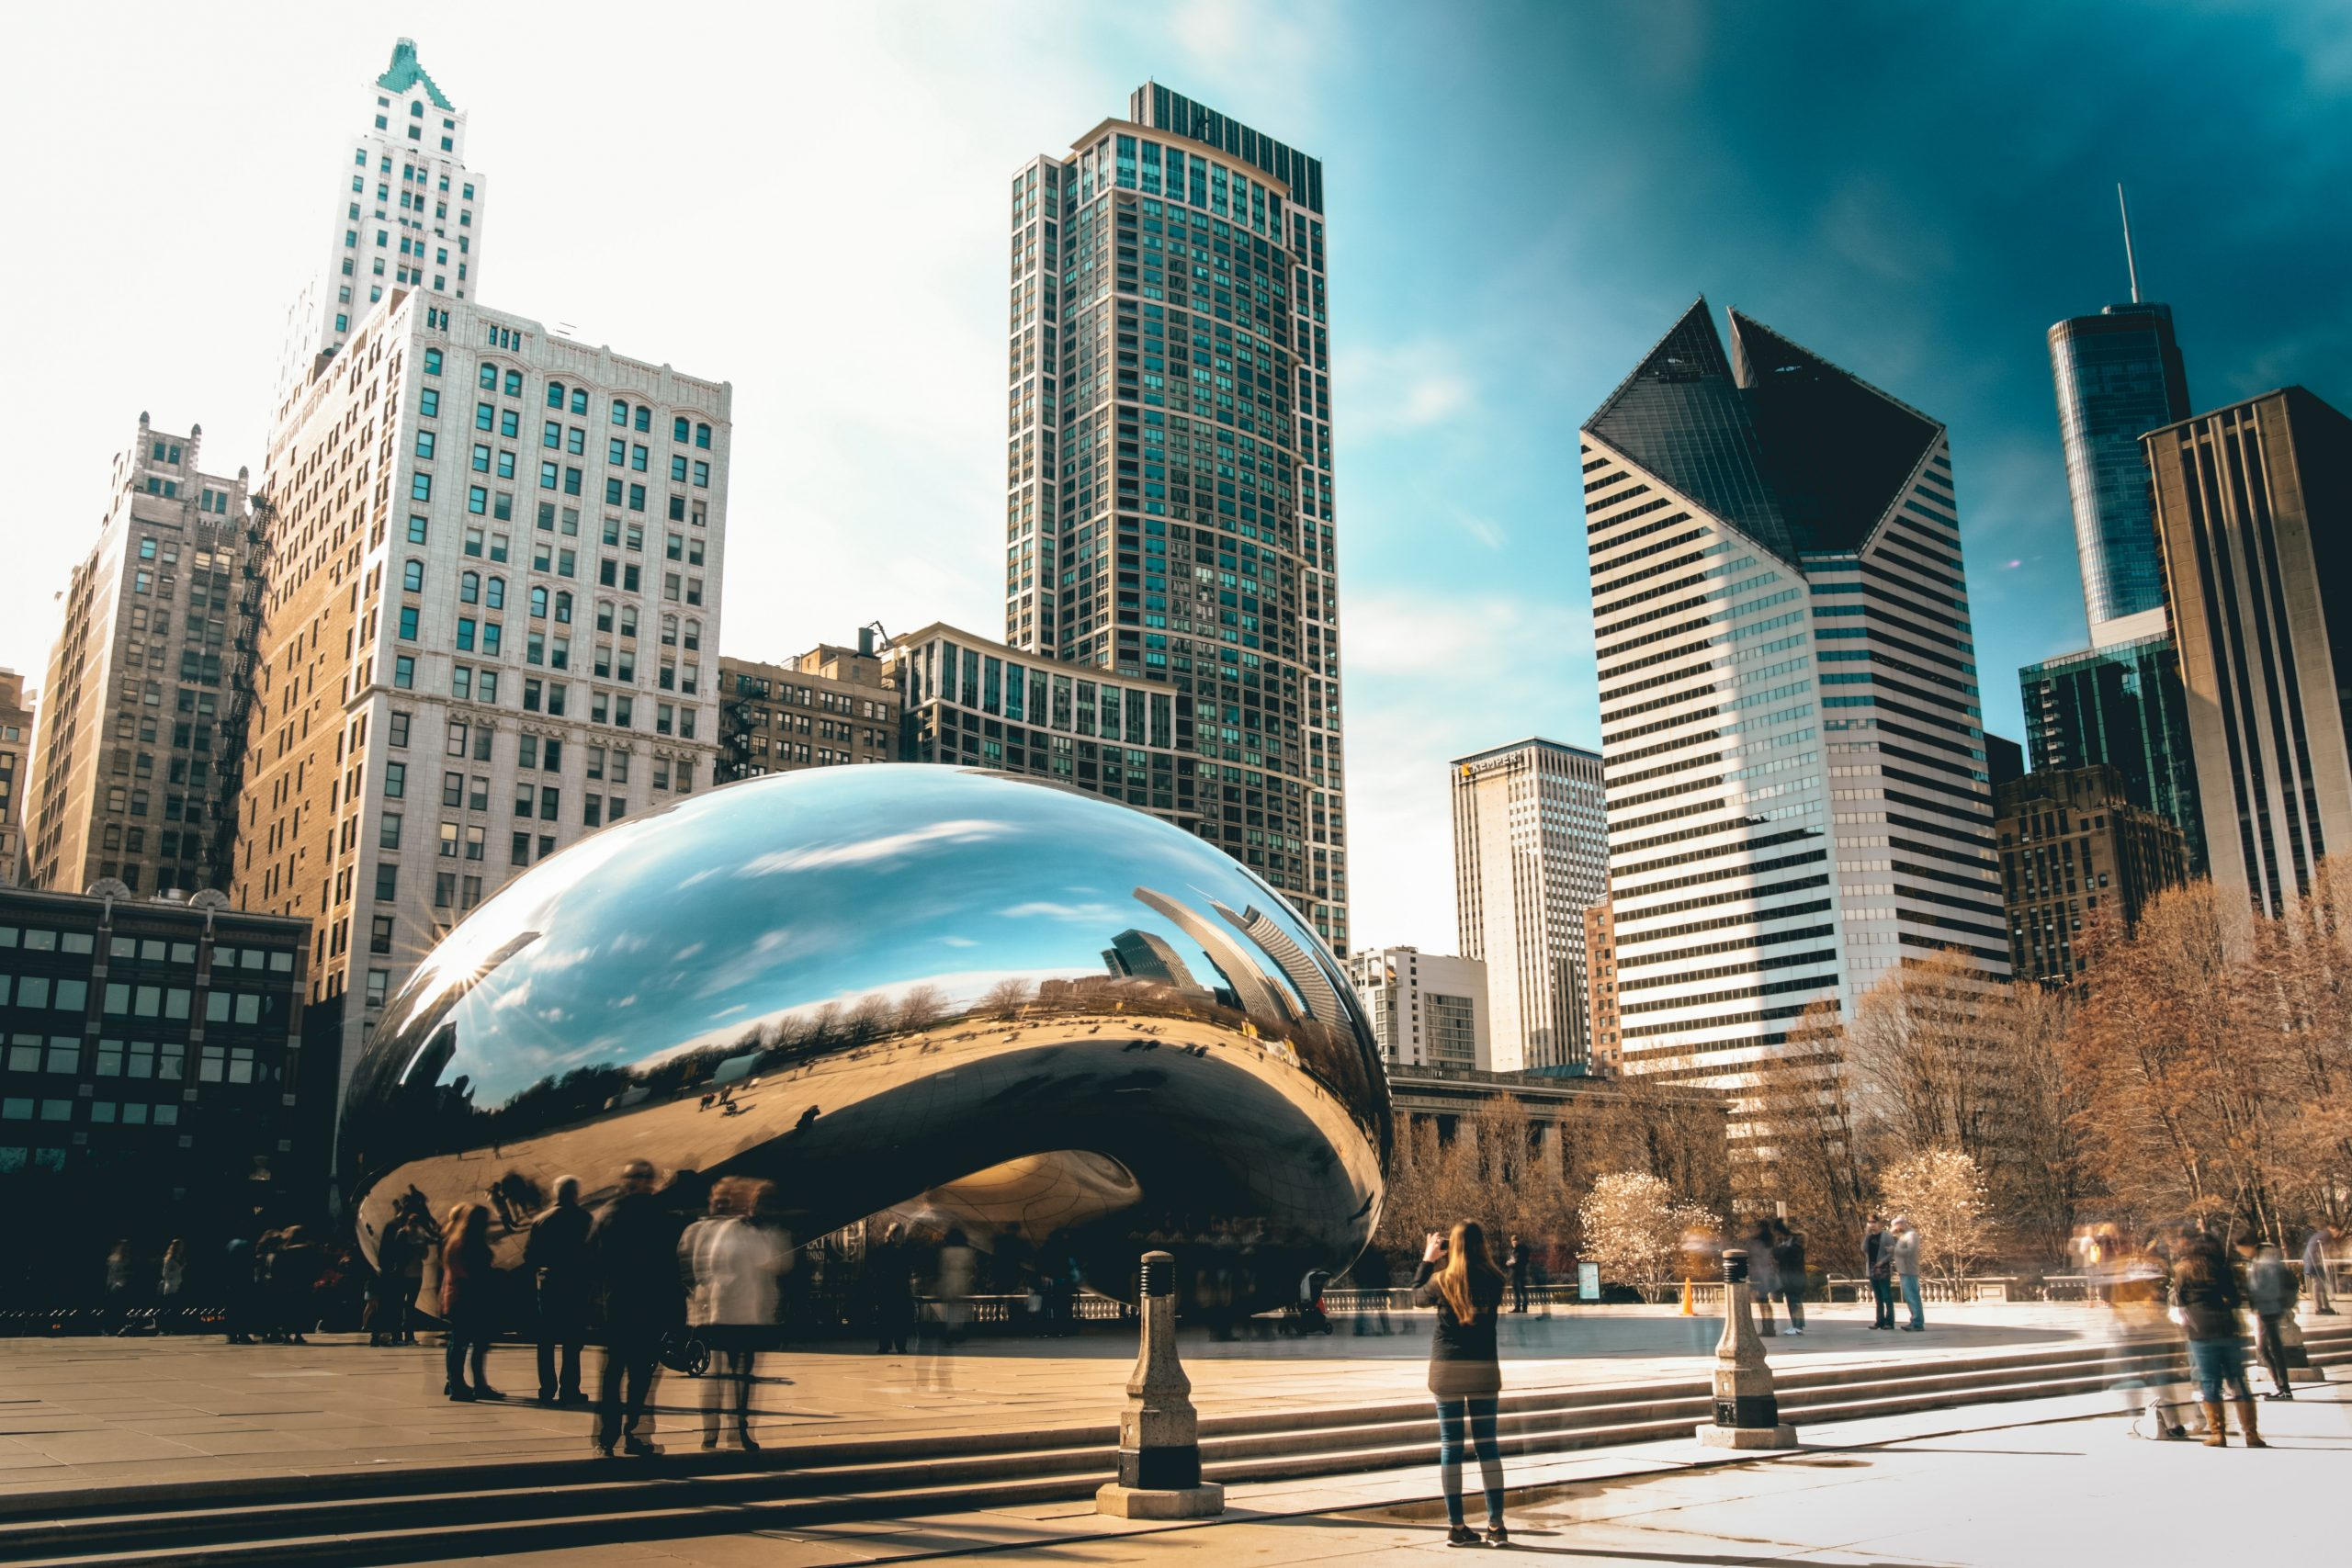 Image of The Bean and Millenium Park, two popular outdoor attractions in Chicago